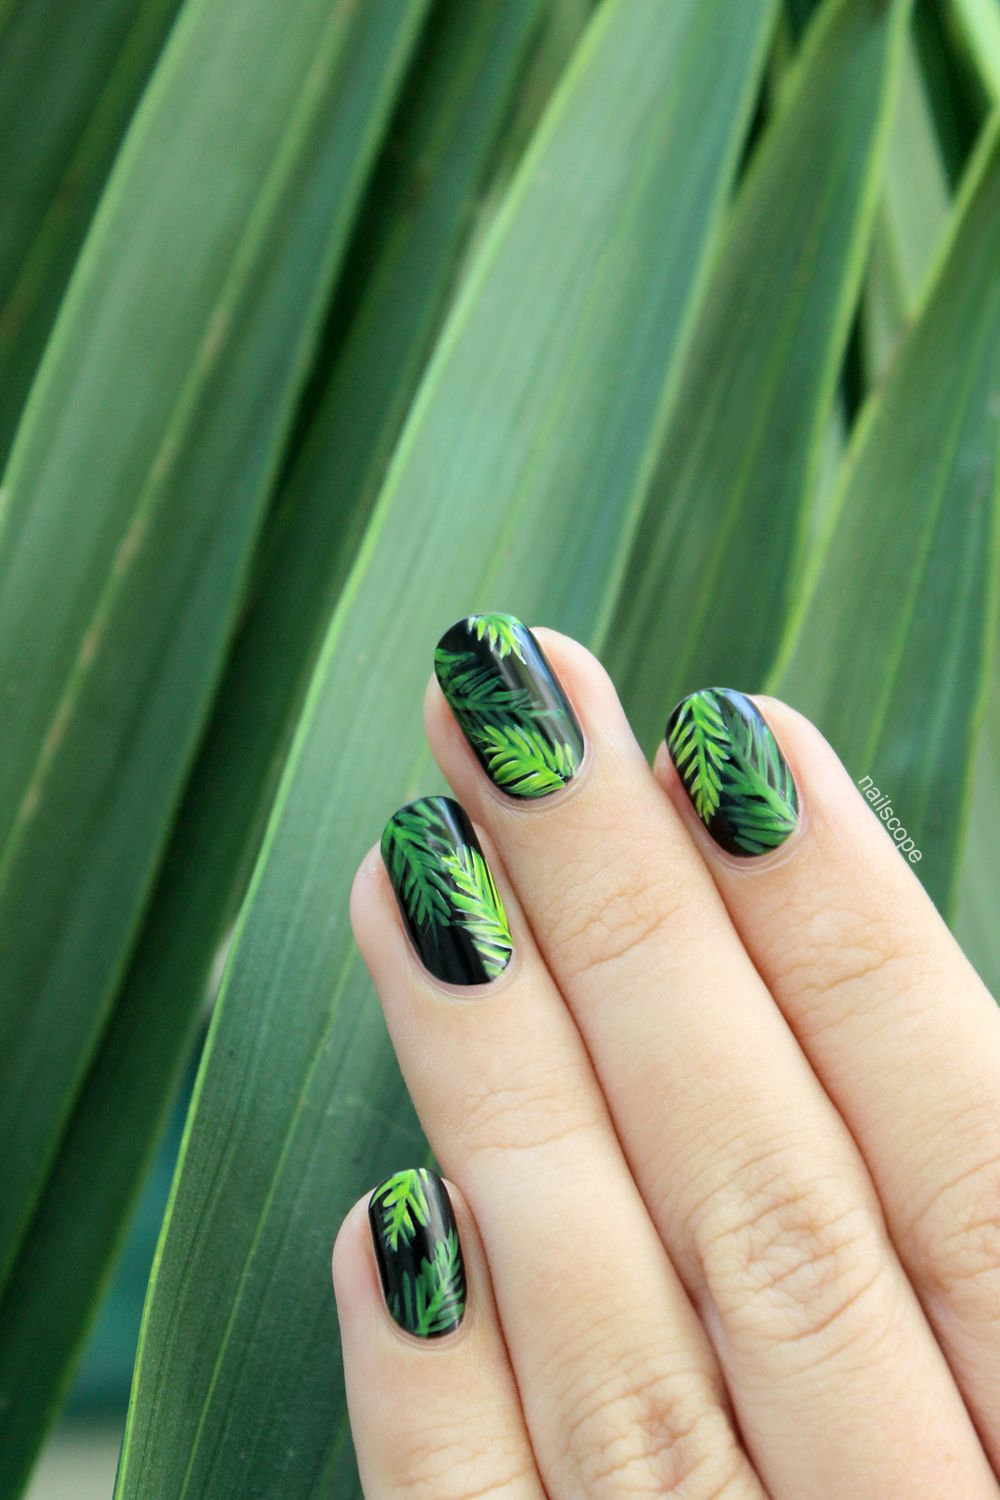 Palm Tree Nails + Tutorial | Hhjjhgg | Pinterest | Palm tree nails ...